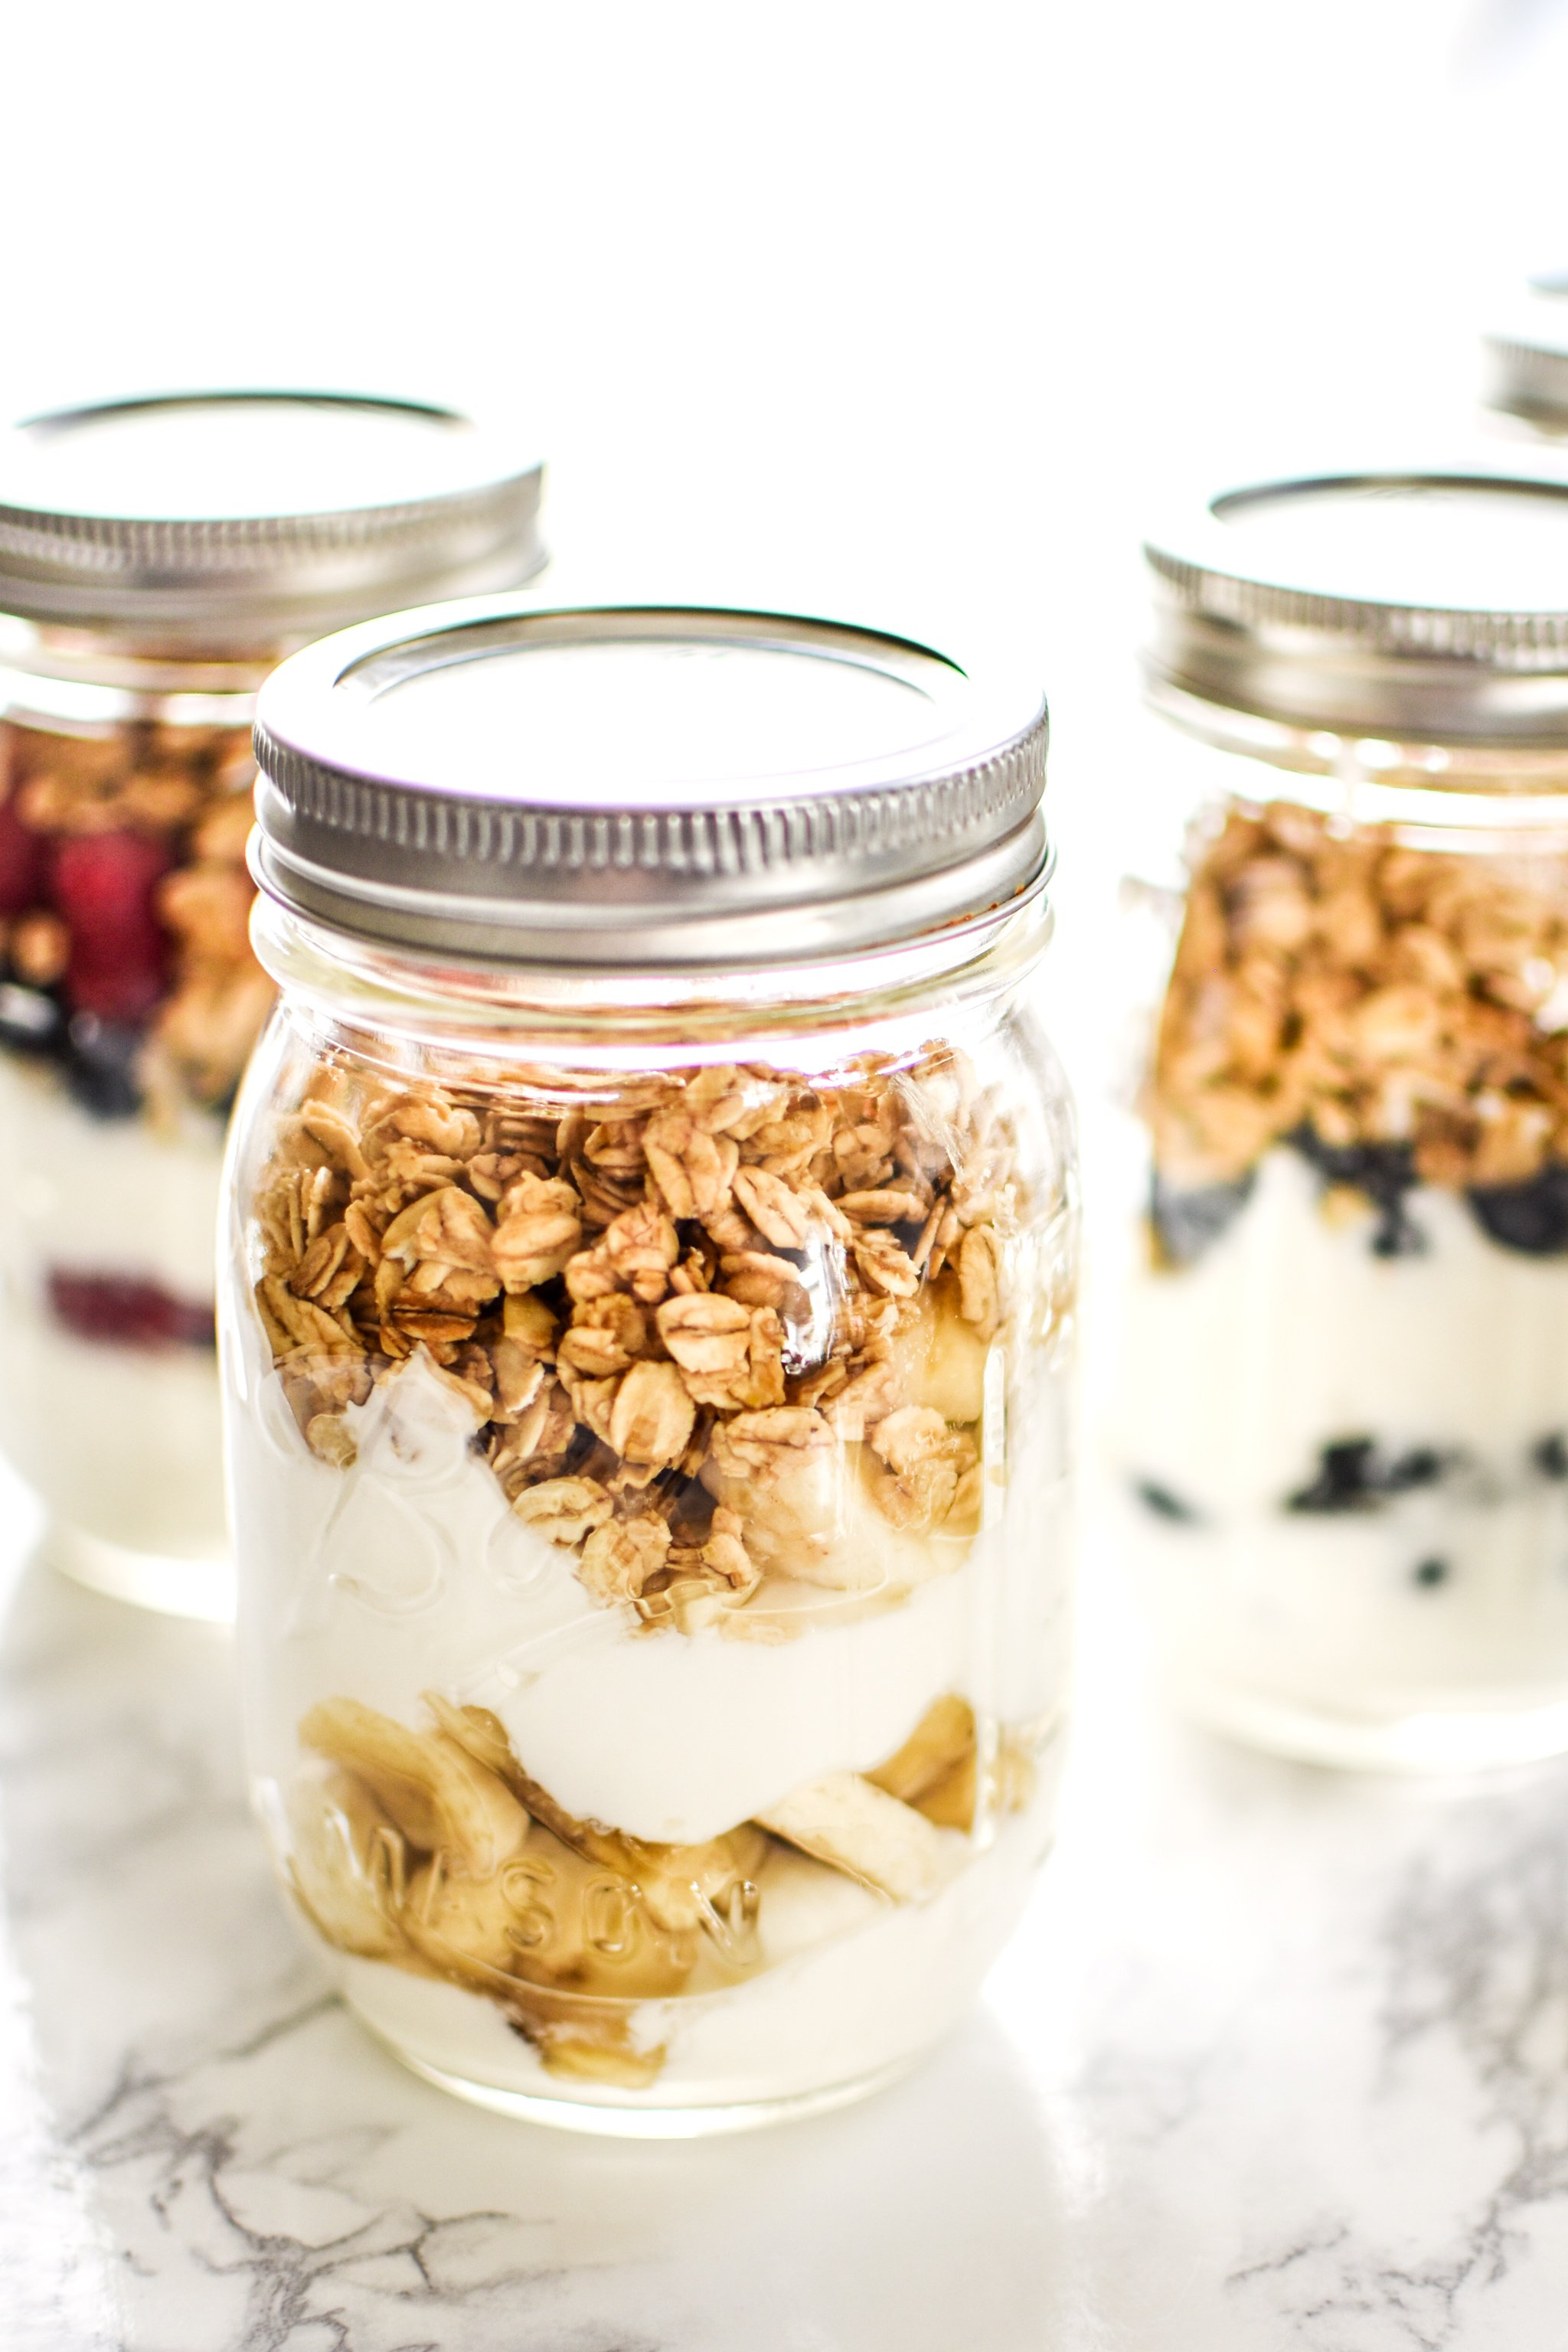 5 Make Ahead Fruit Greek Yogurt Parfait Ideas To Try For Breakfast